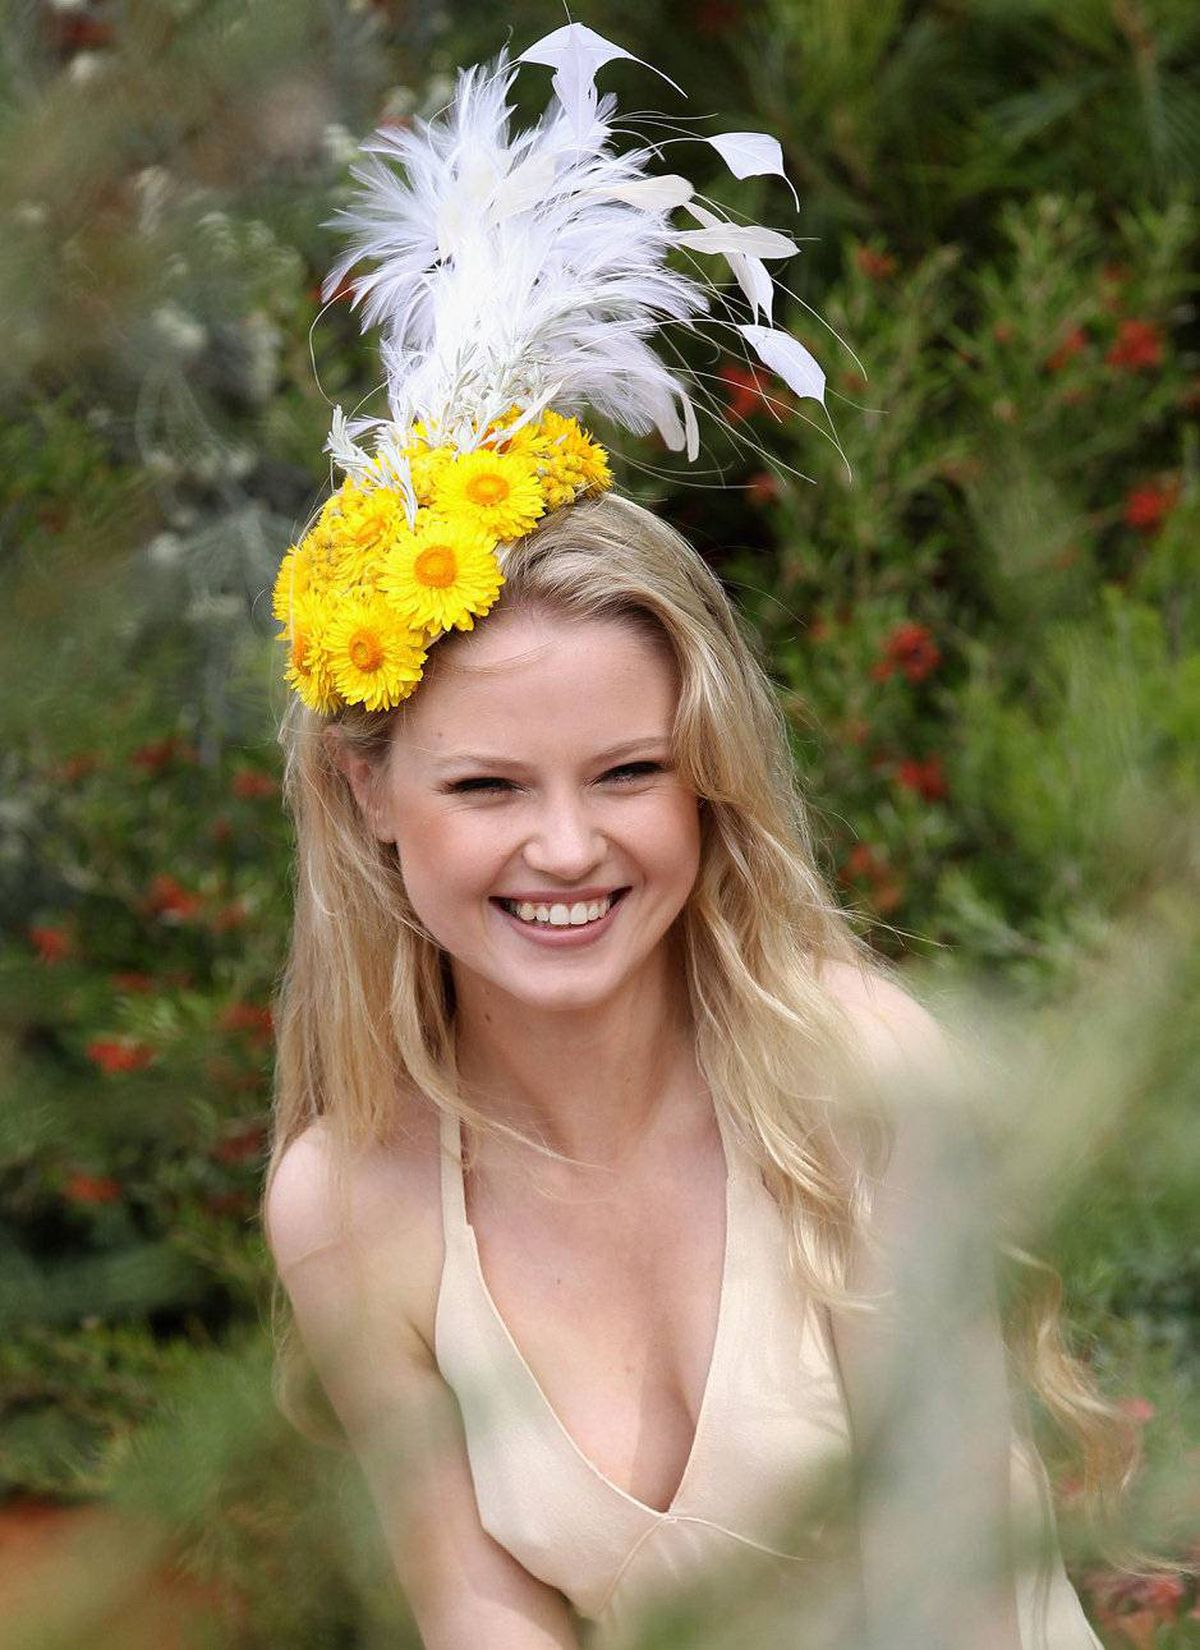 Model Adeele Rassel poses in the Royal Botanic Gardens of Melbourne 'The Australian' Garden during the Chelsea Flower Show Press and VIP Day on May 23, 2011 in London, England.